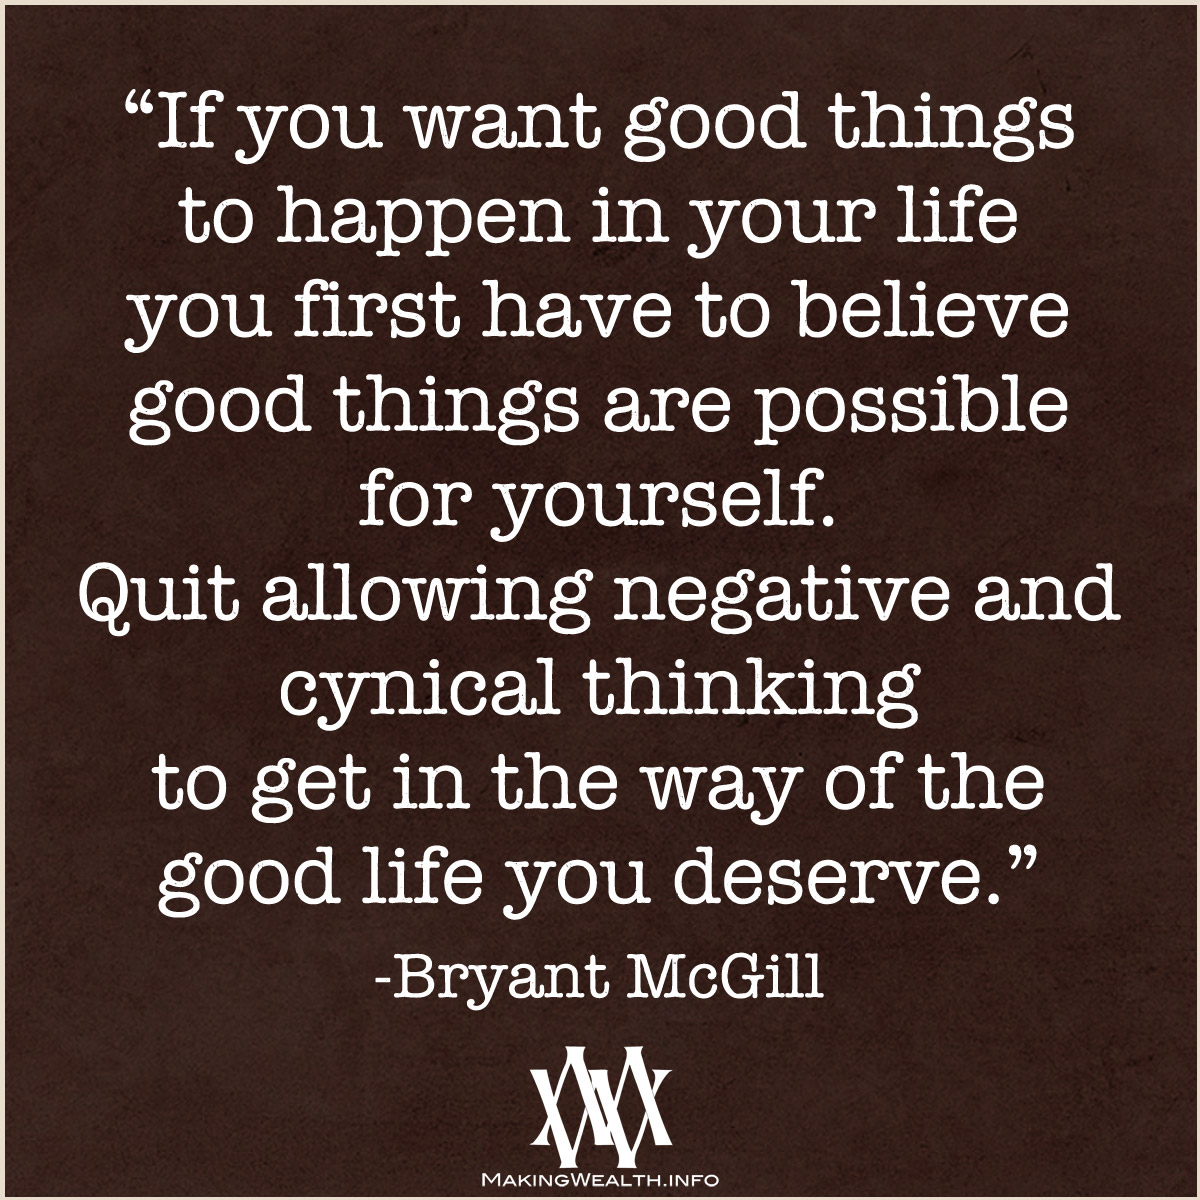 If You Want Good Things To Happen In Your Life